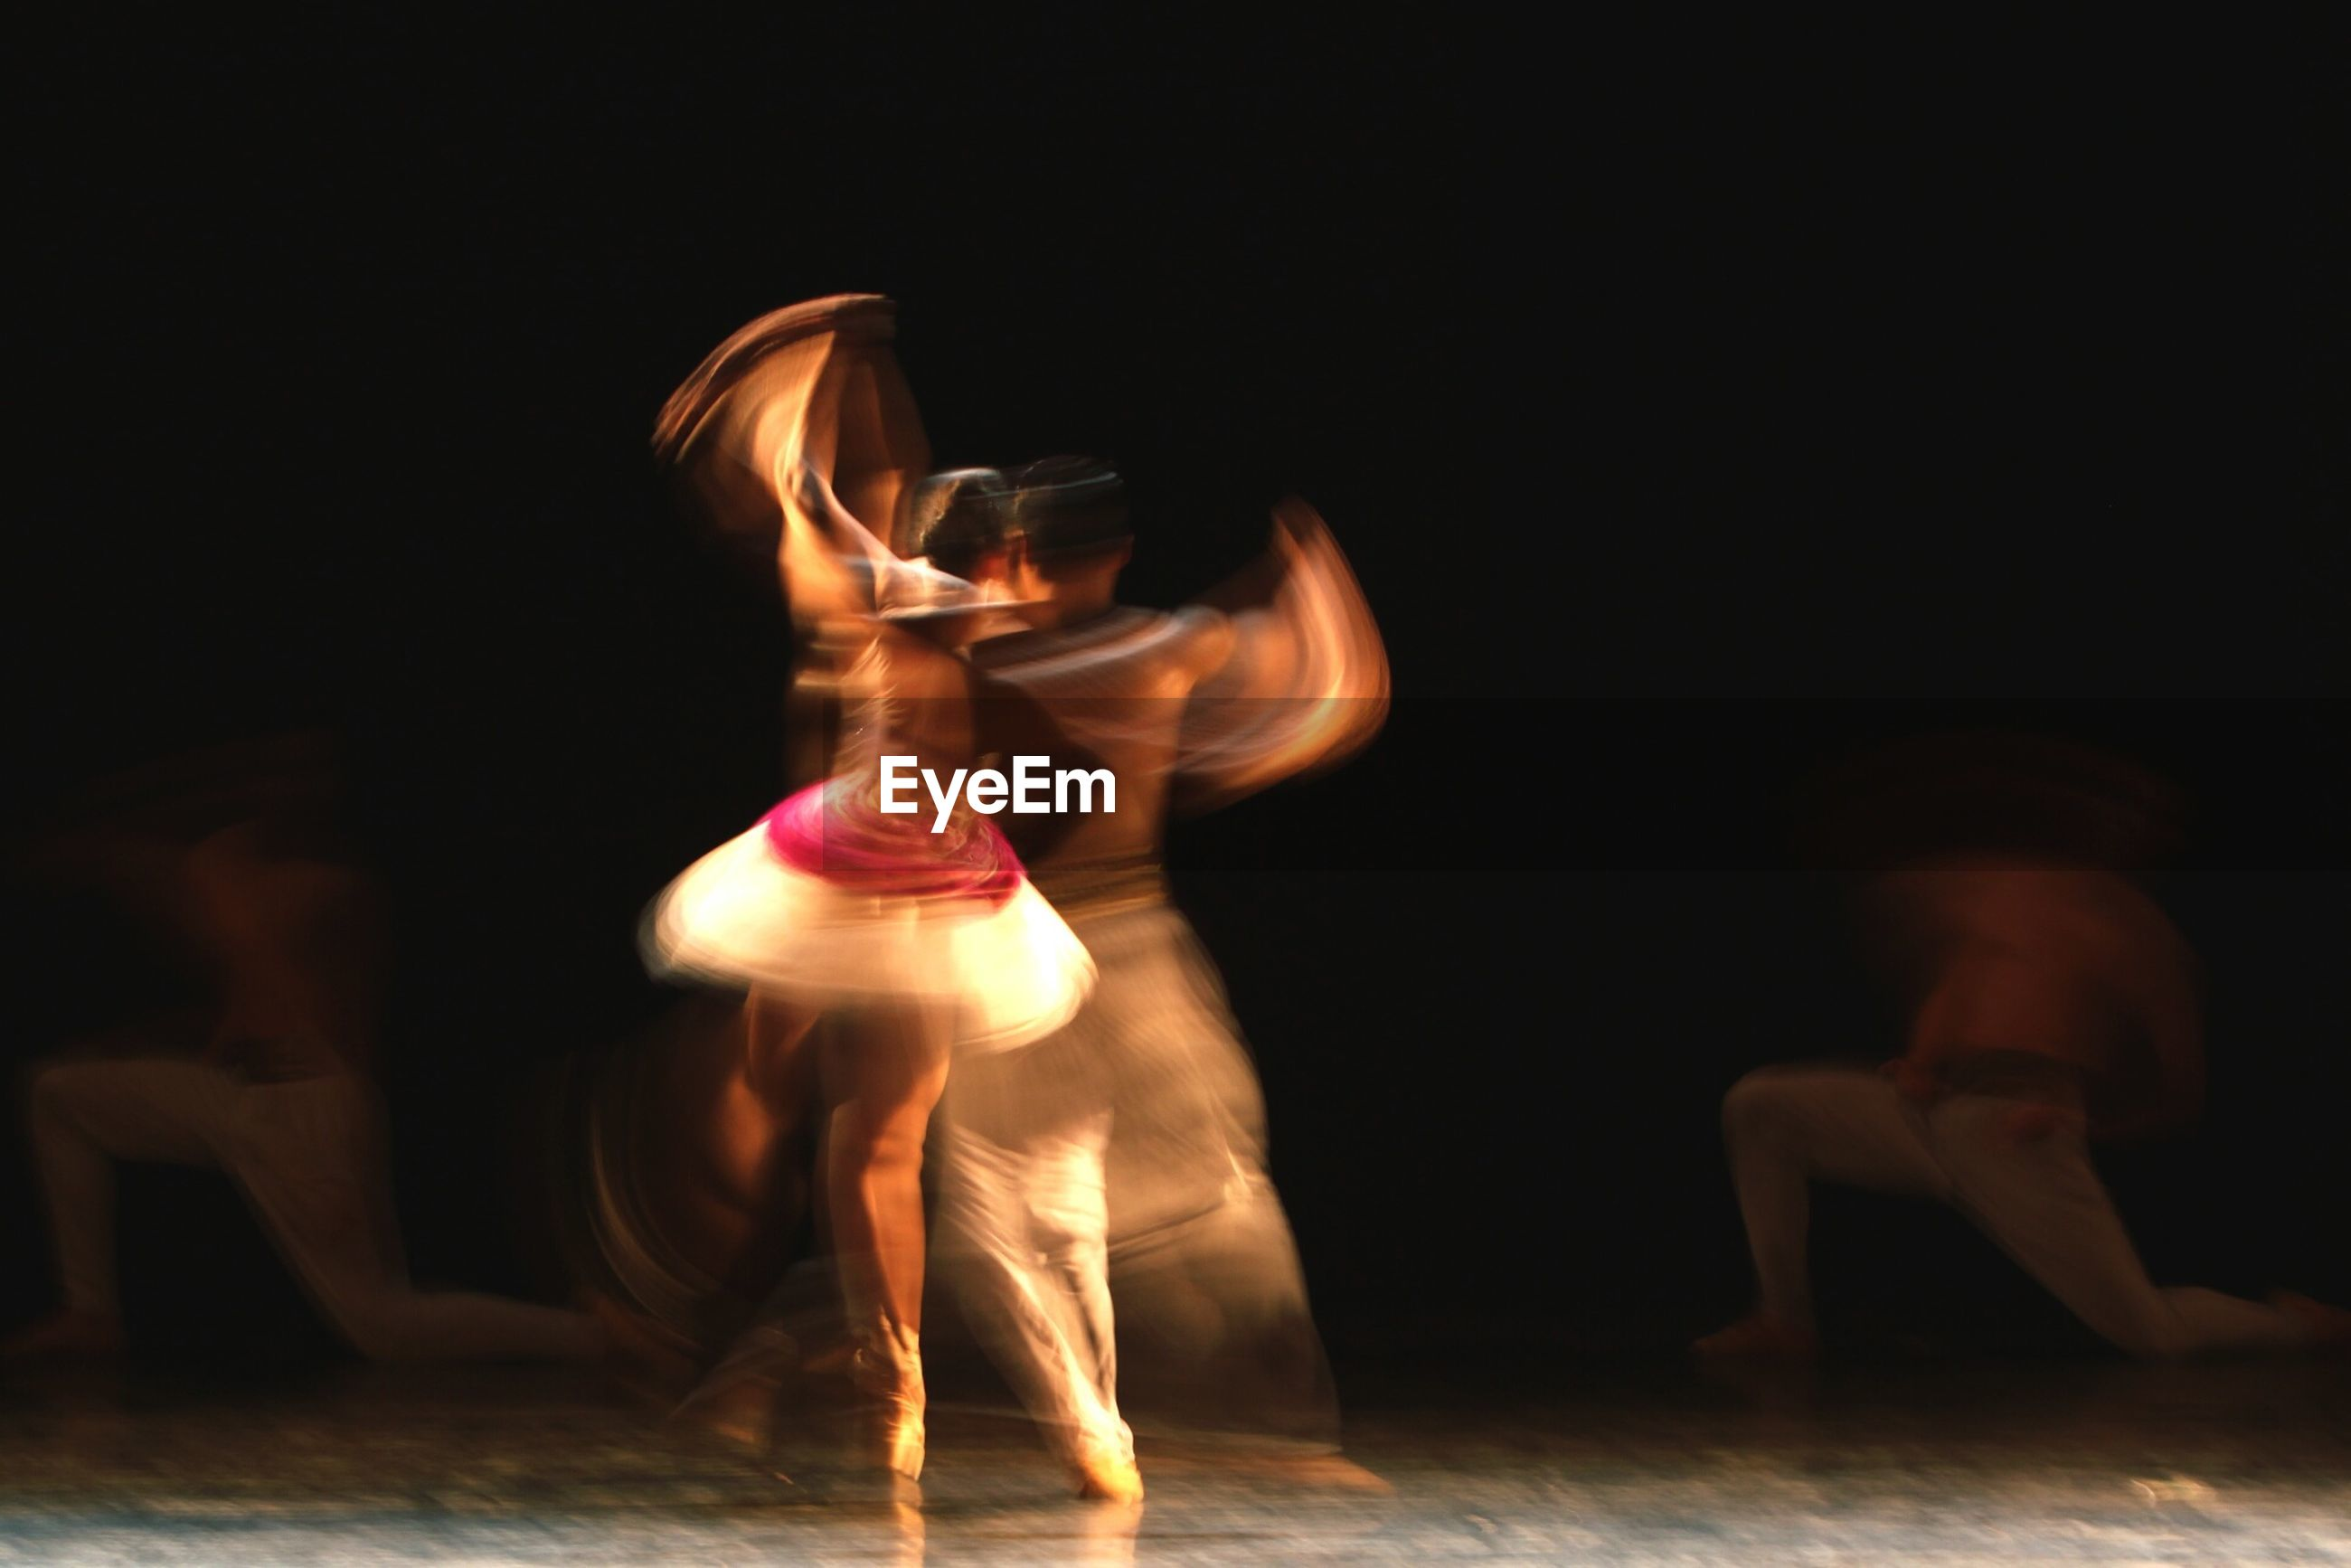 Blurred motion of artists dancing on stage